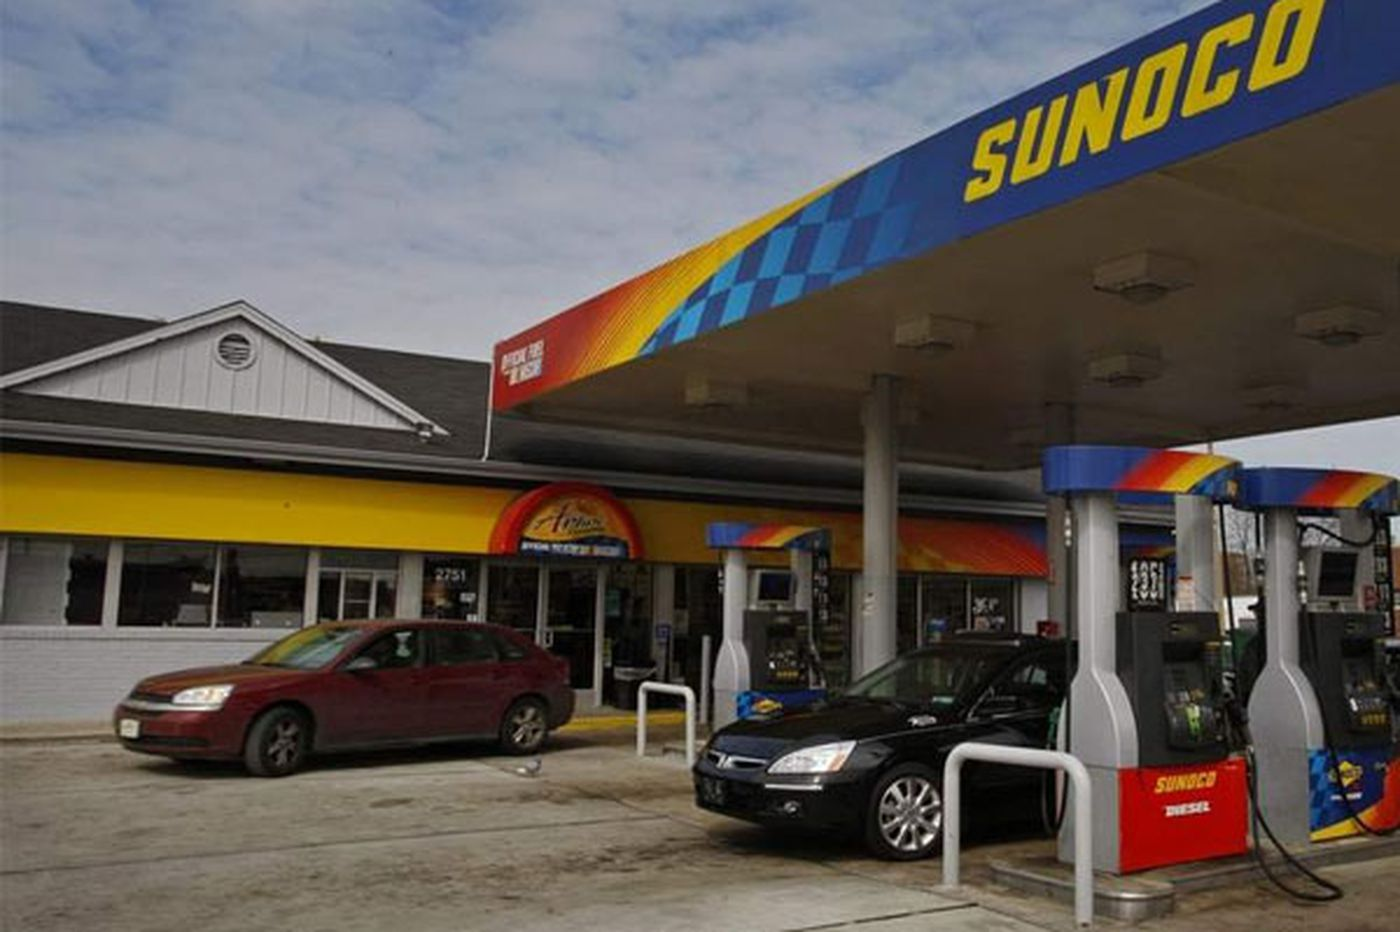 Sunoco parent buys Texas chain for $1.8 billion